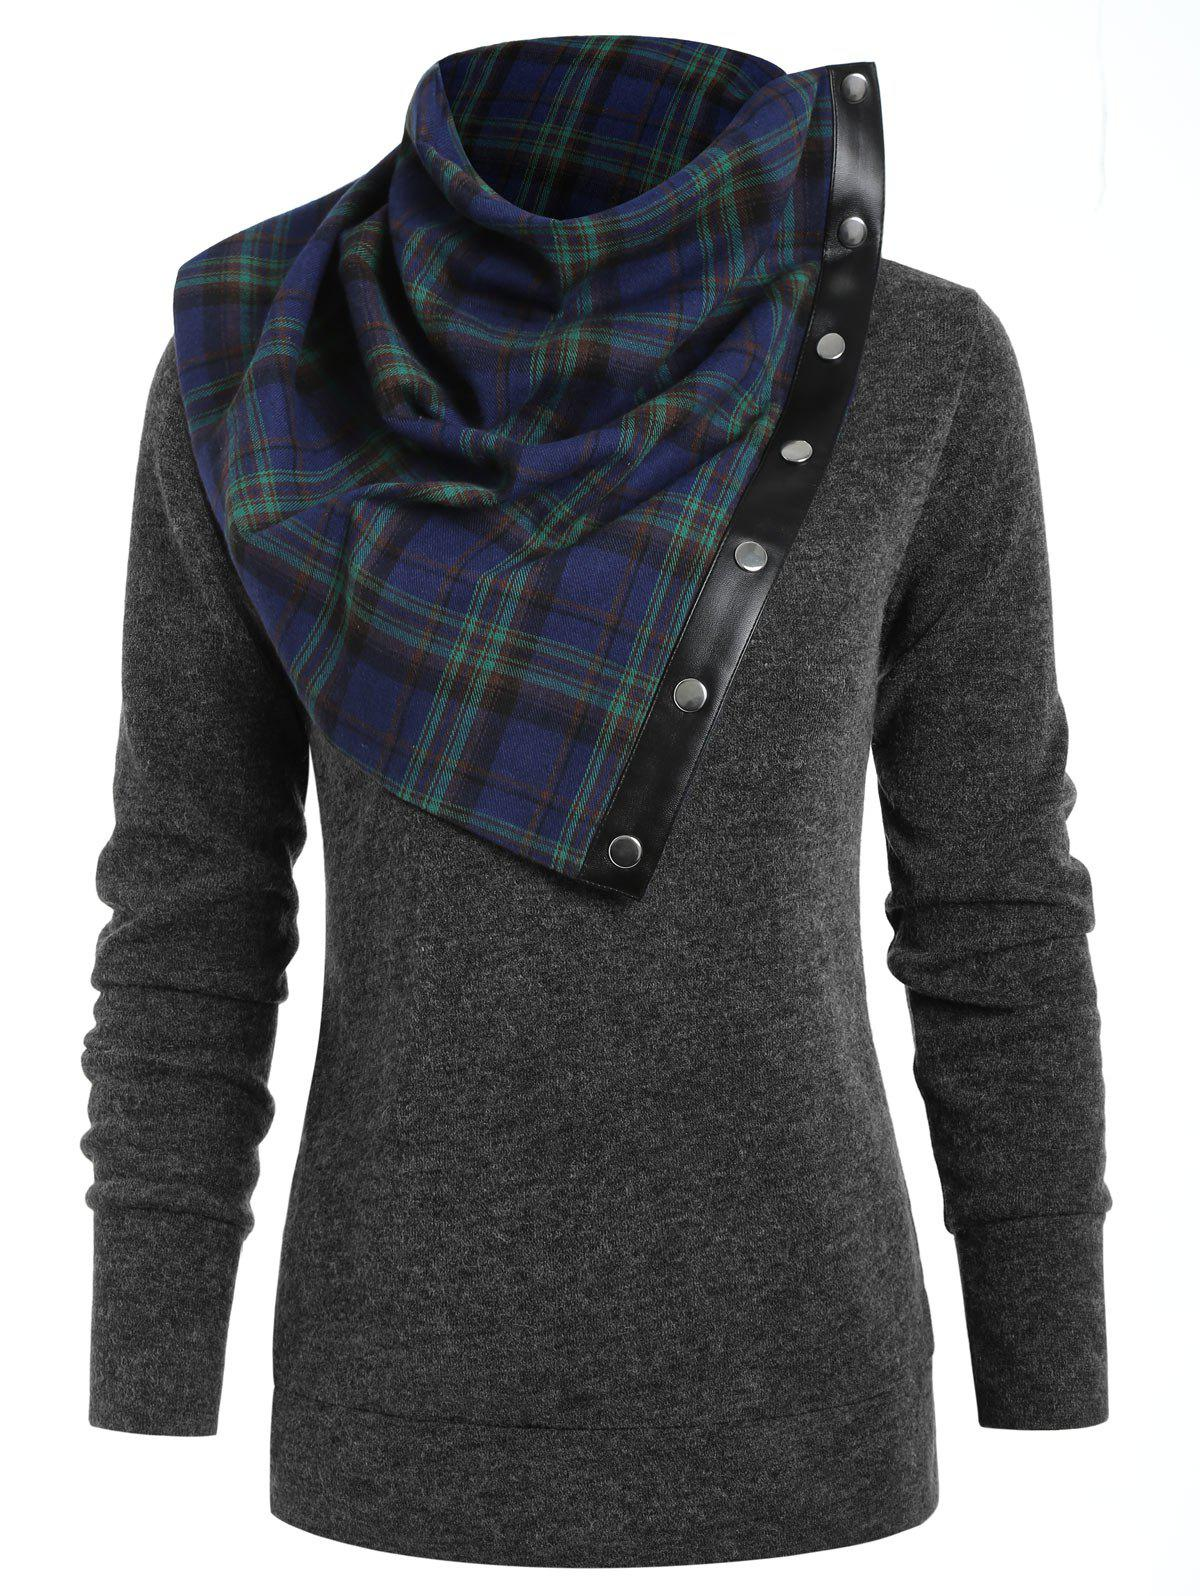 Buy Round Neck Sweatshirt with Tartan Neck Gaiter